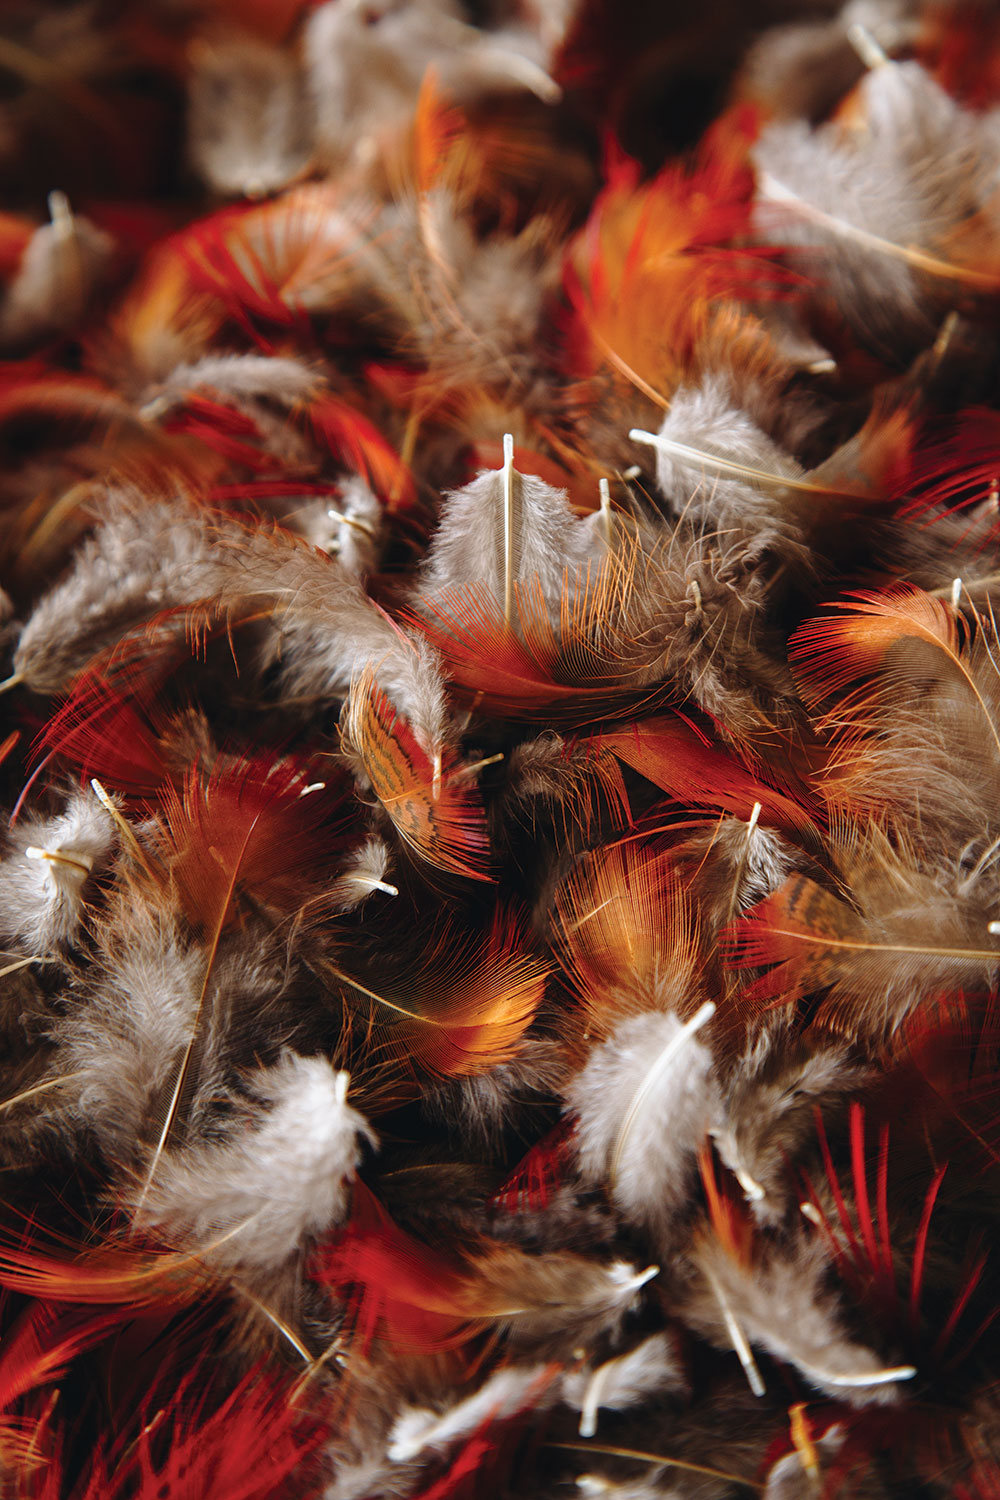 Orange, brown, and white colored feathers in a pile